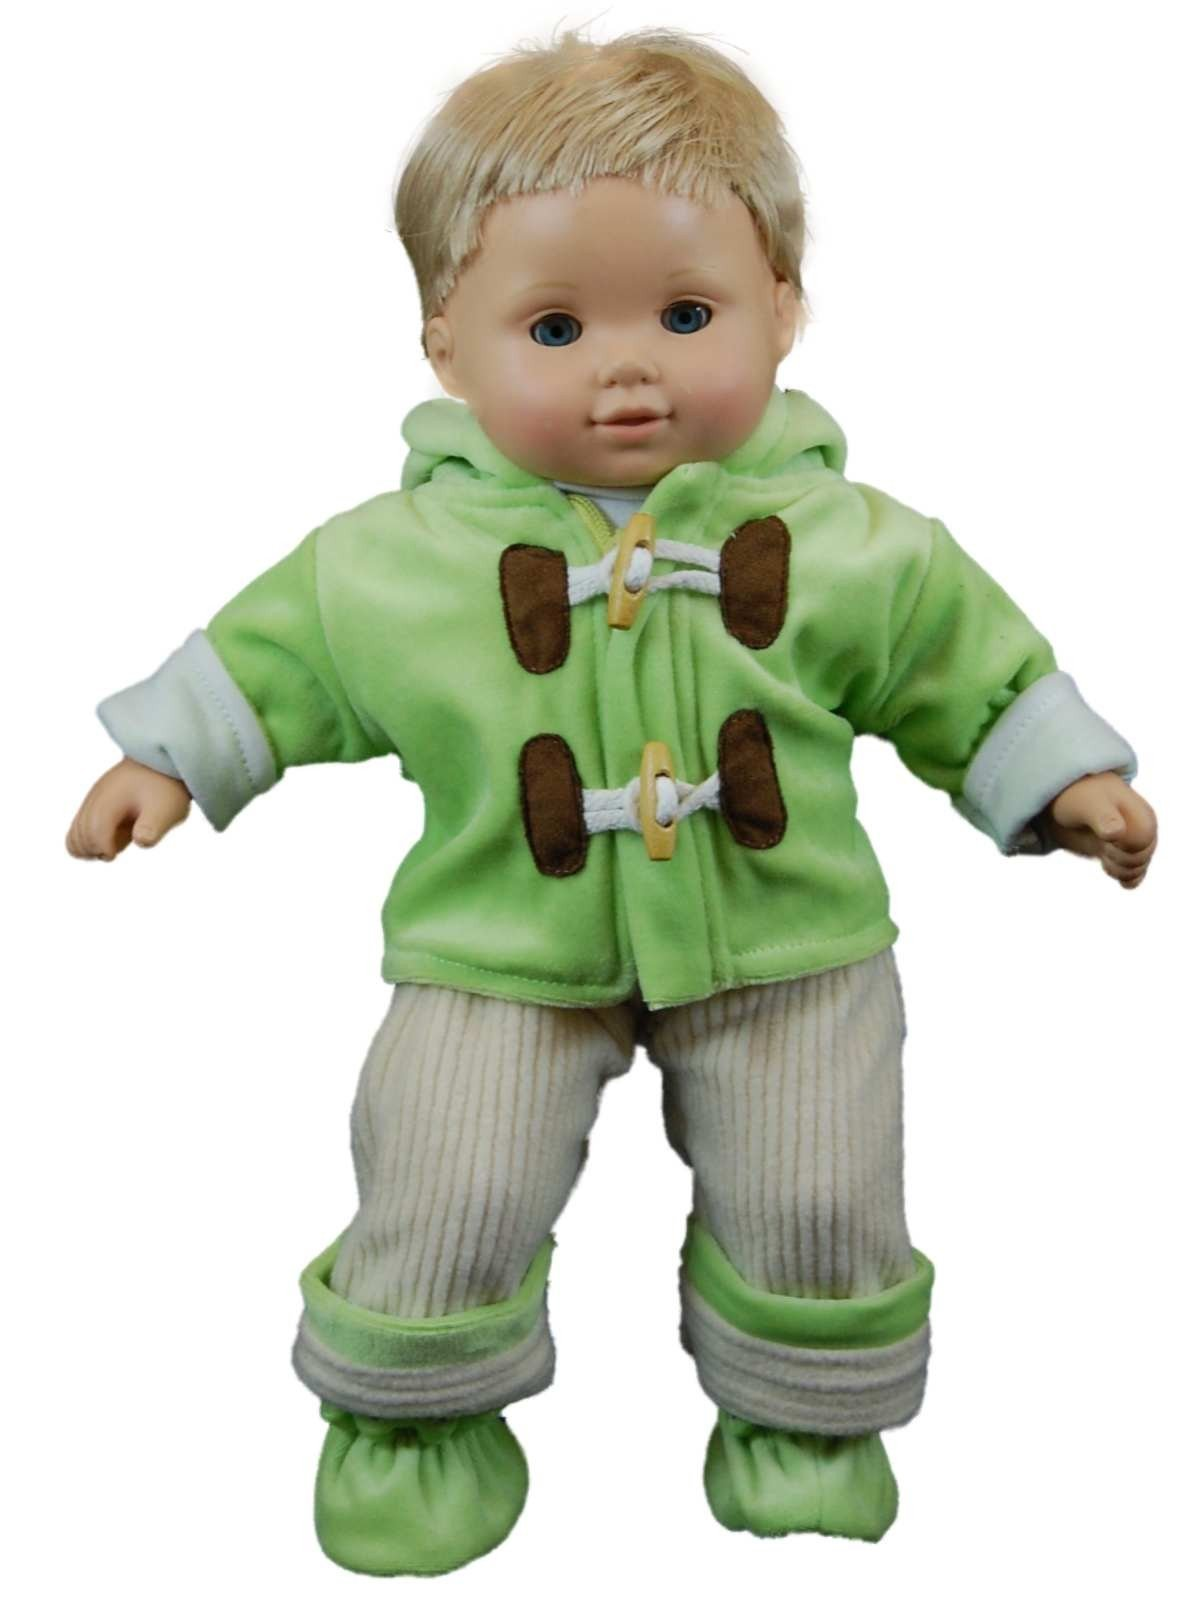 green fleece overall doll clothes outfit for 15 bitty. Black Bedroom Furniture Sets. Home Design Ideas